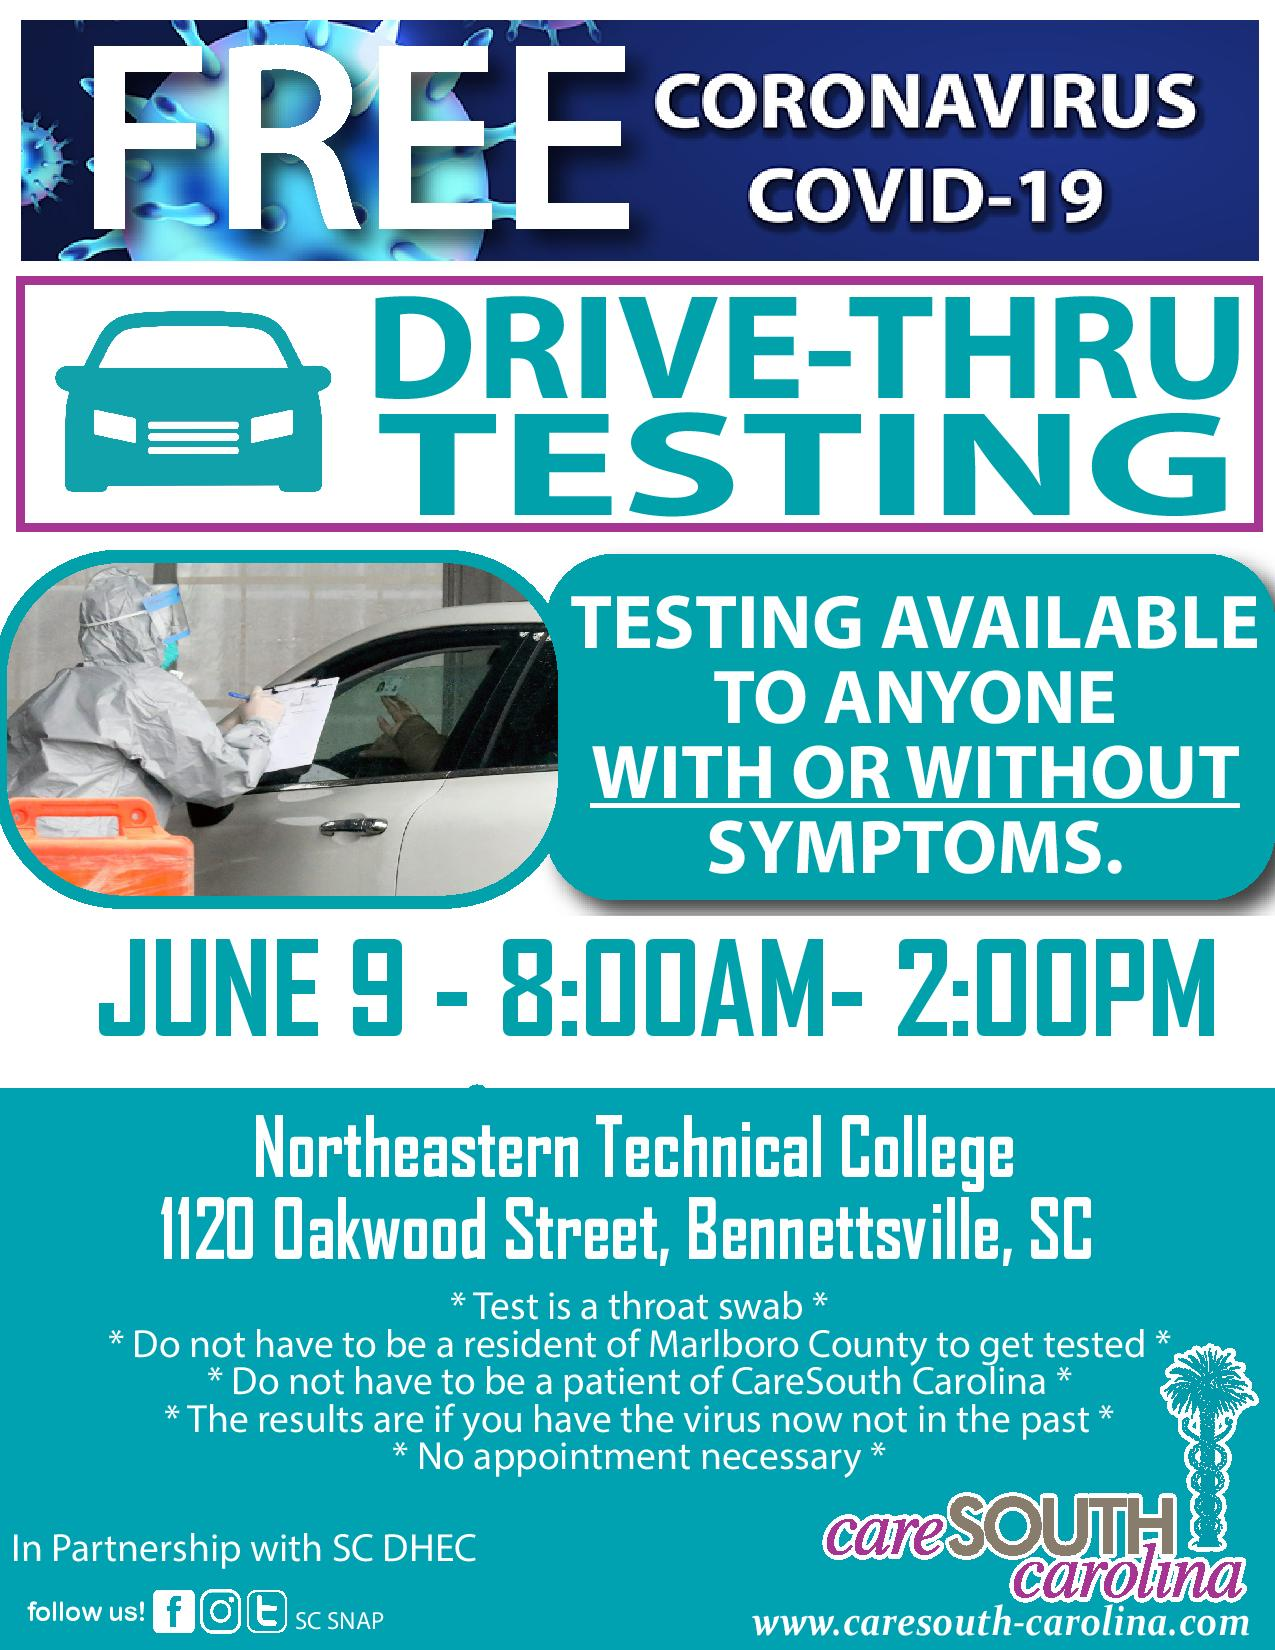 Free COVID-19 testing in Bennettsville